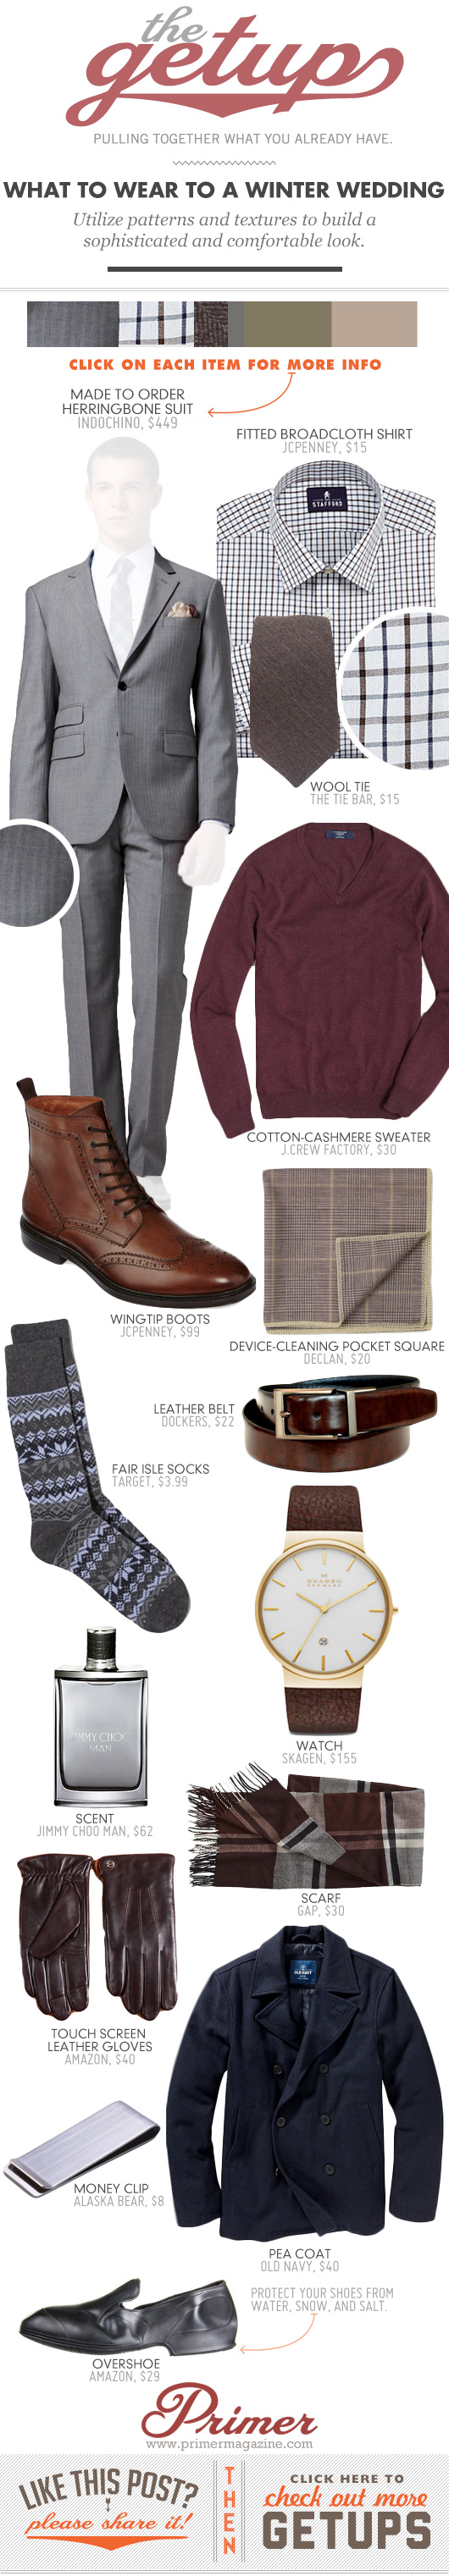 Getup What to Wear to a Winter Wedding - Gray suit, red sweater, brown boots